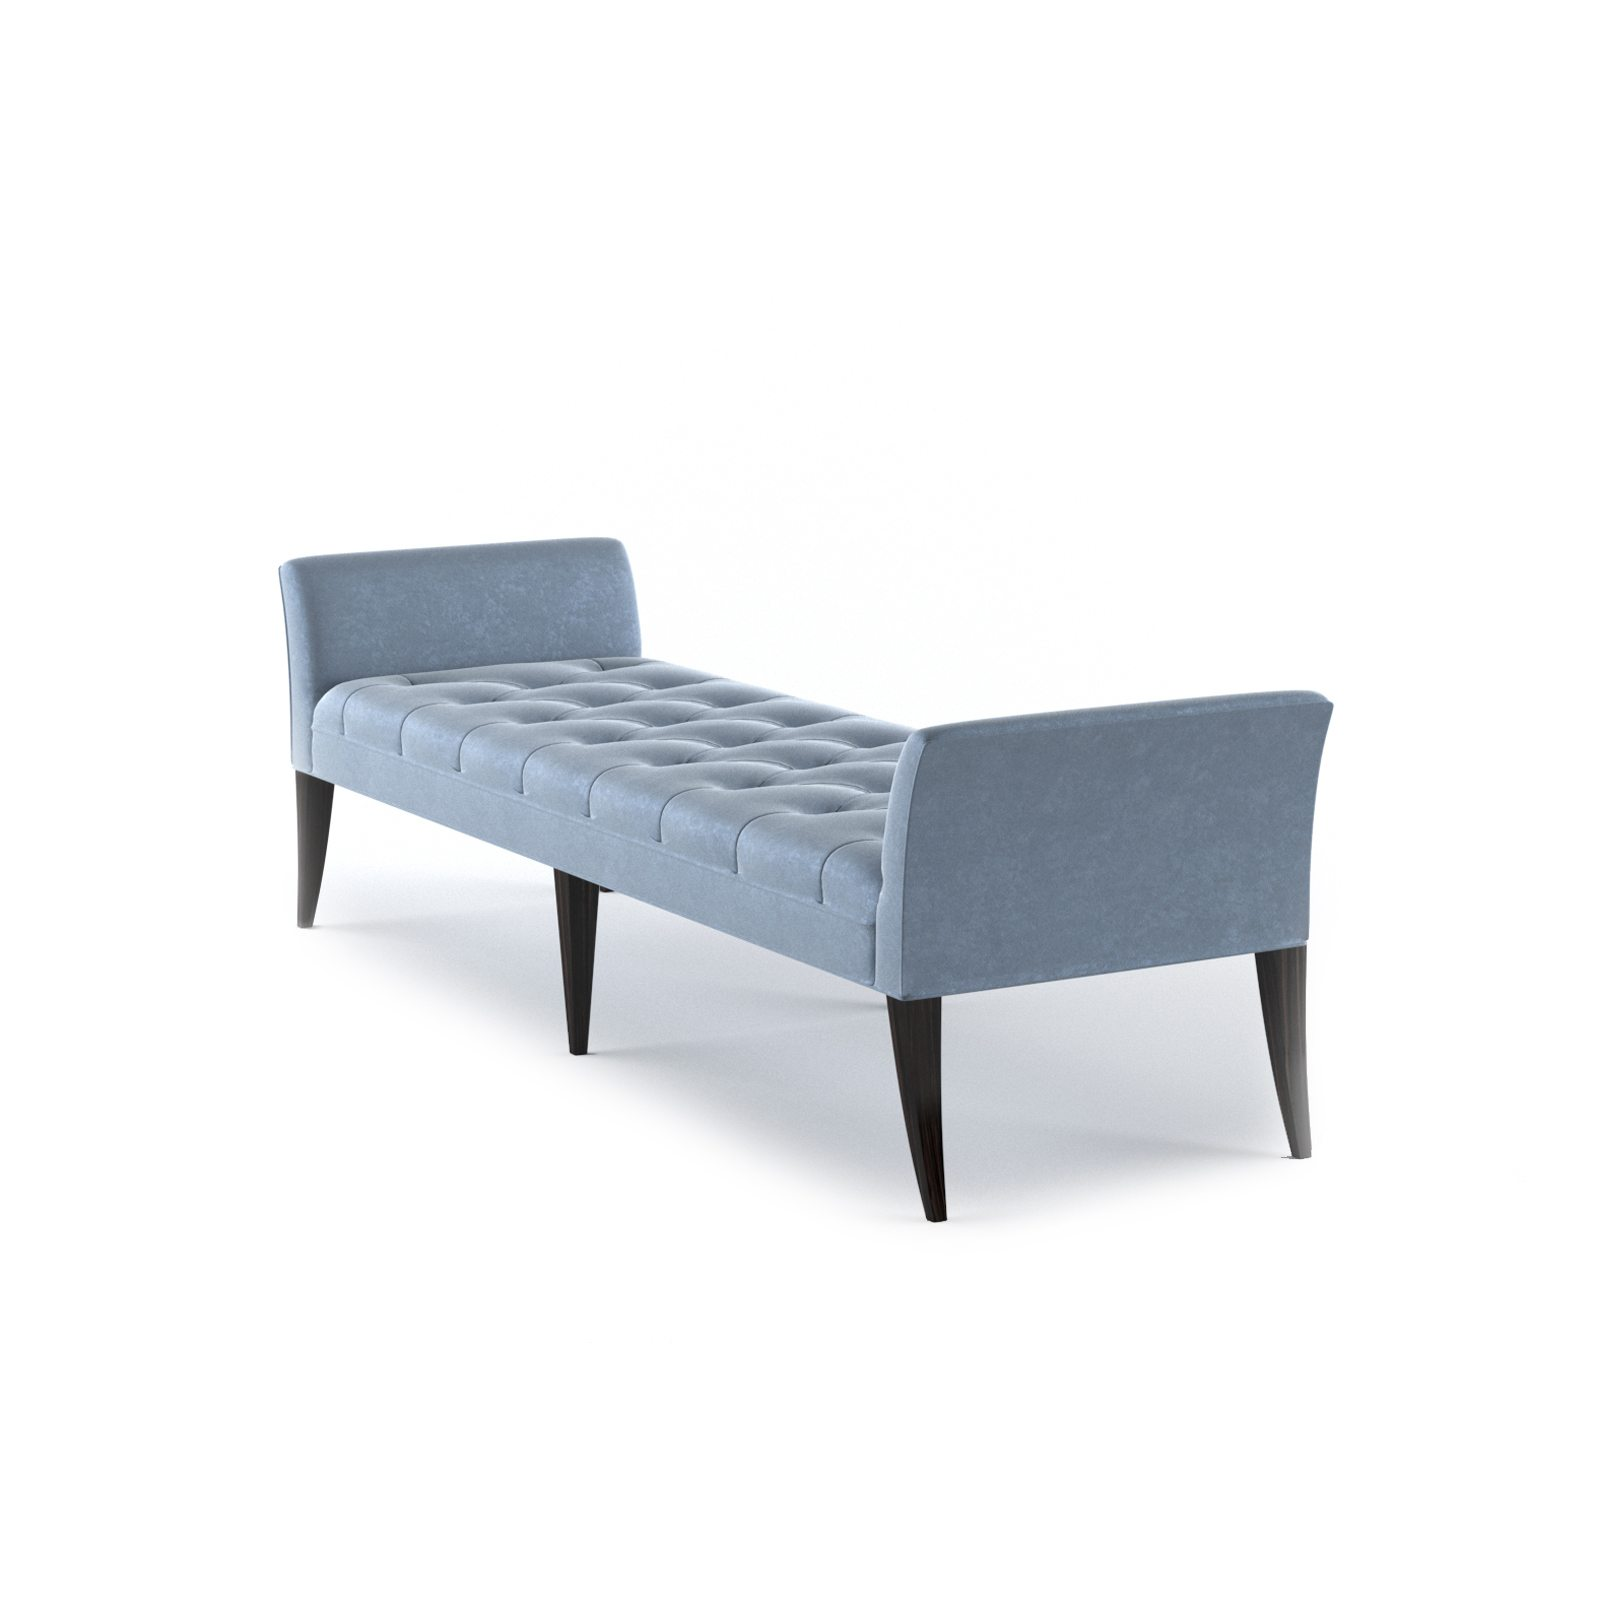 Altman Bench 02 by Bonham & Bonham 03